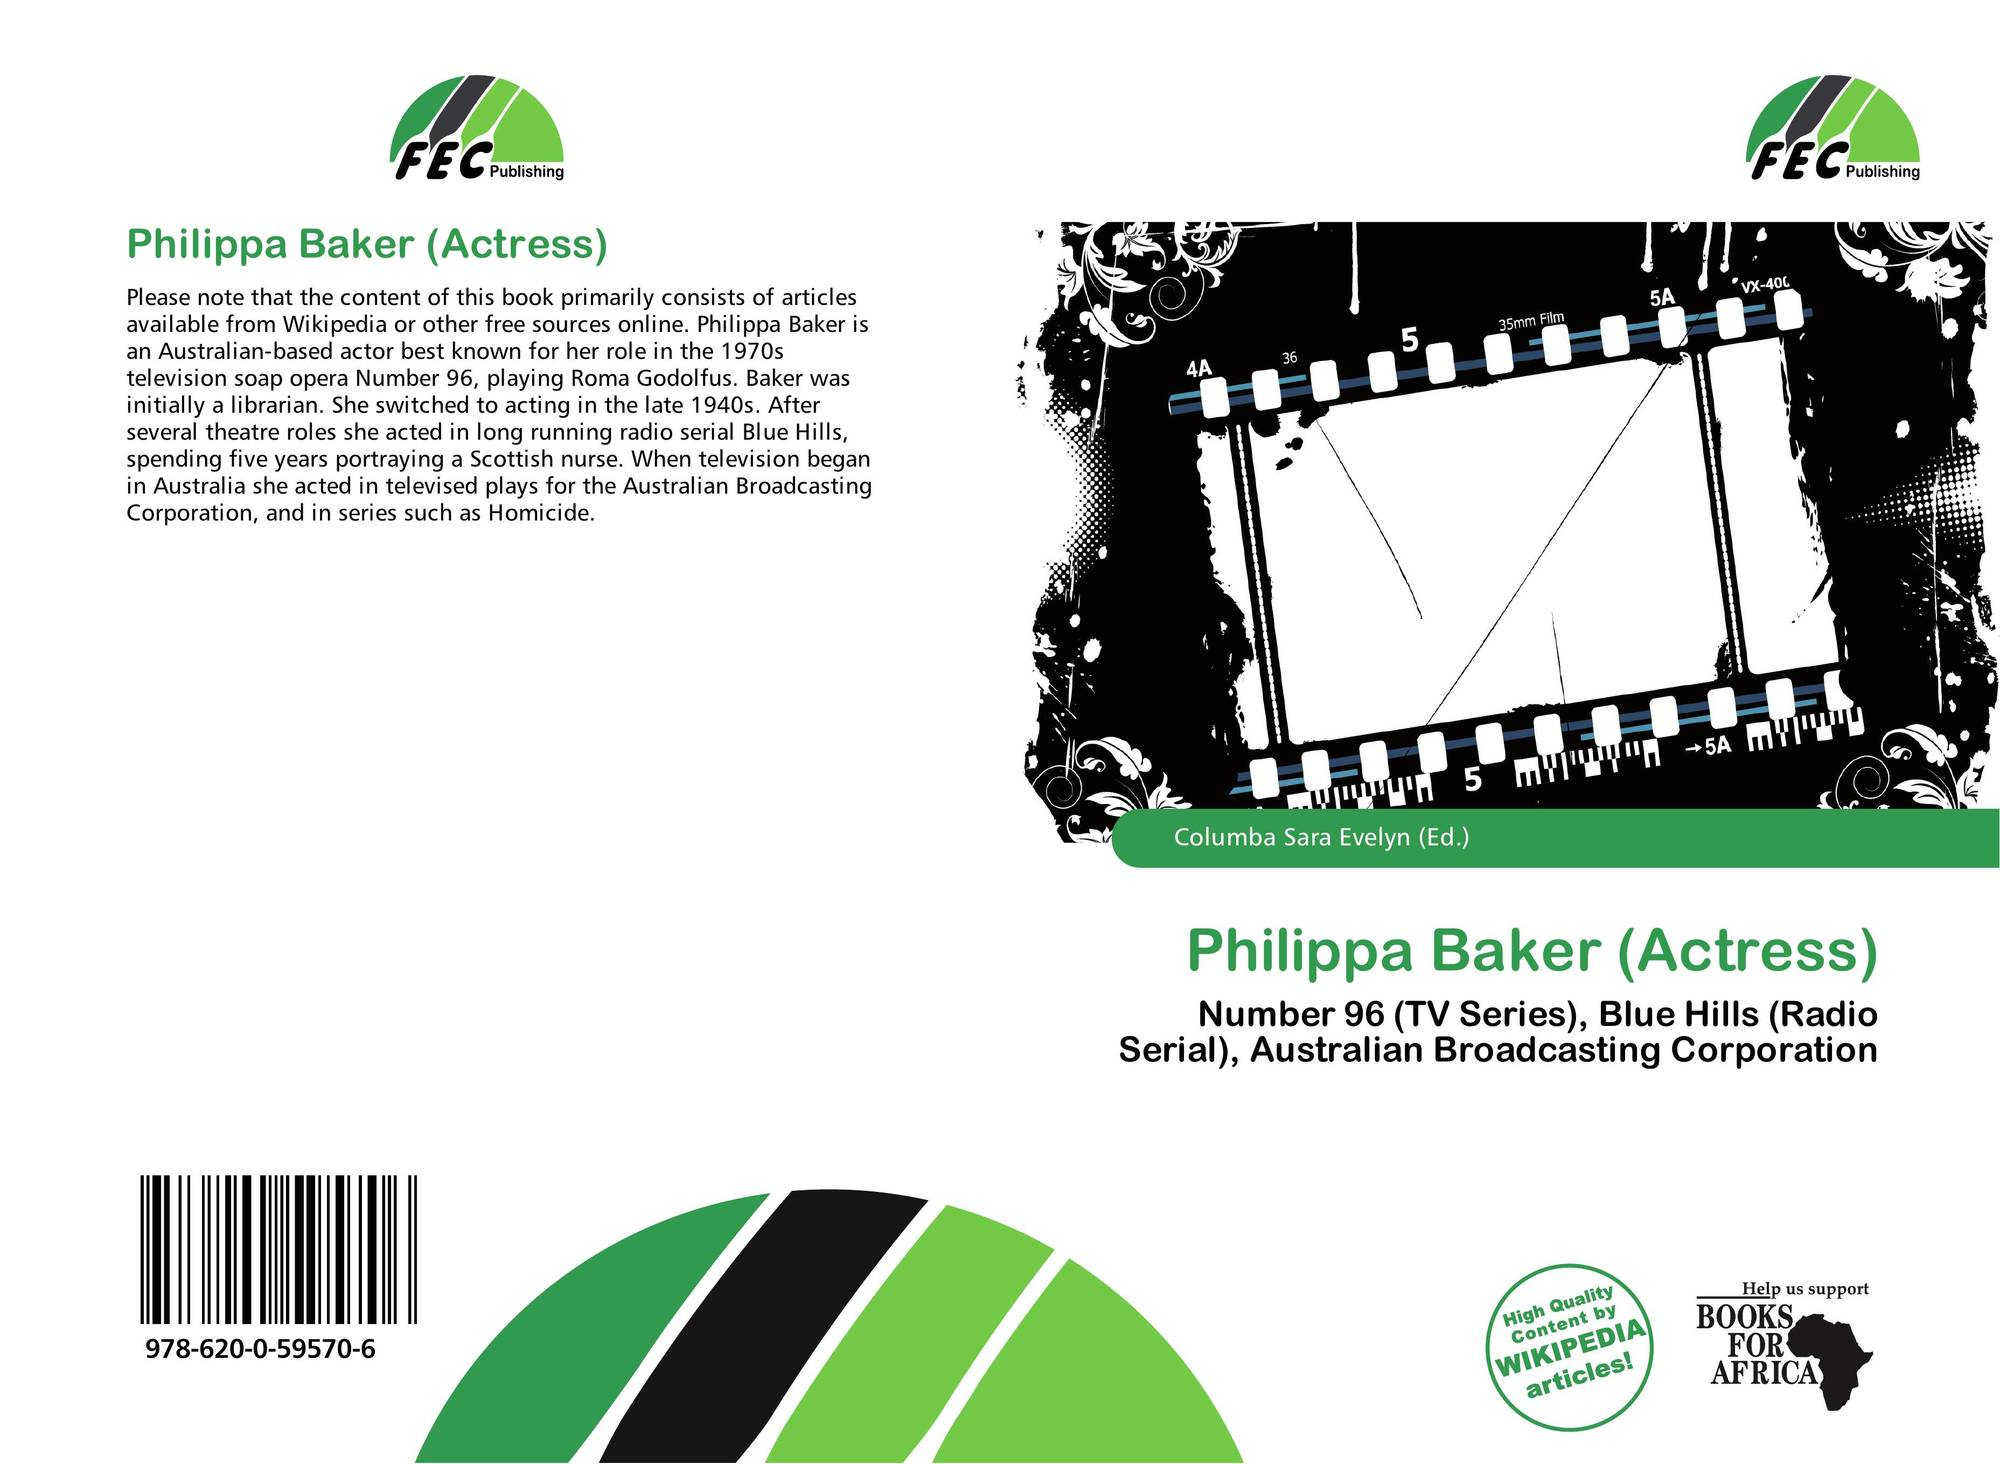 Philippa Baker (actress)